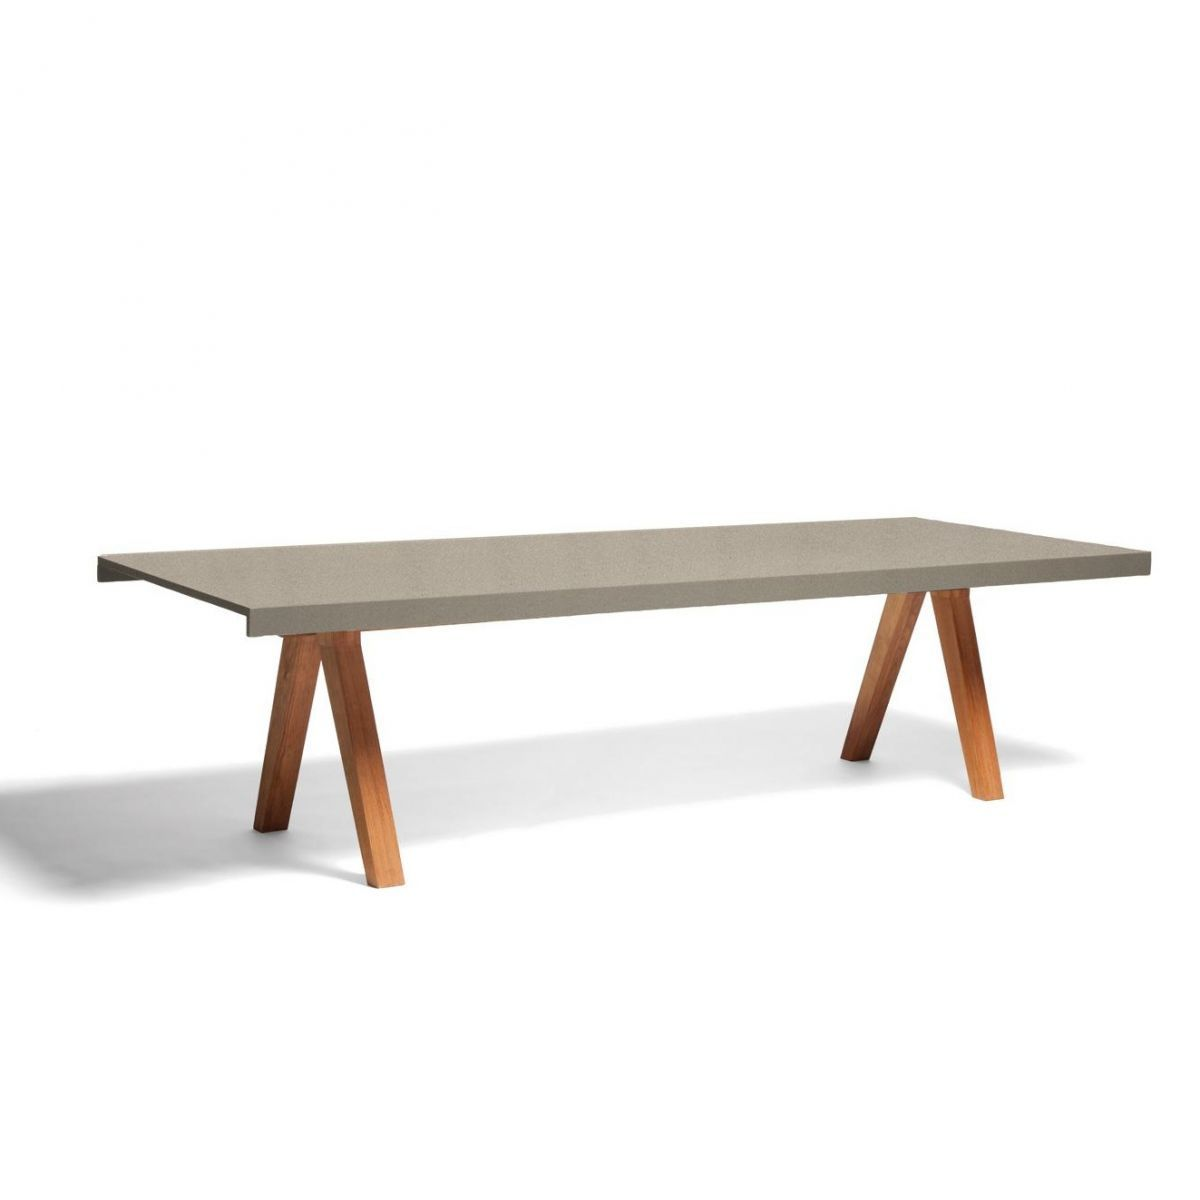 Vieques Dining Table teak 270x101cm | Kettal | Garden tables ...